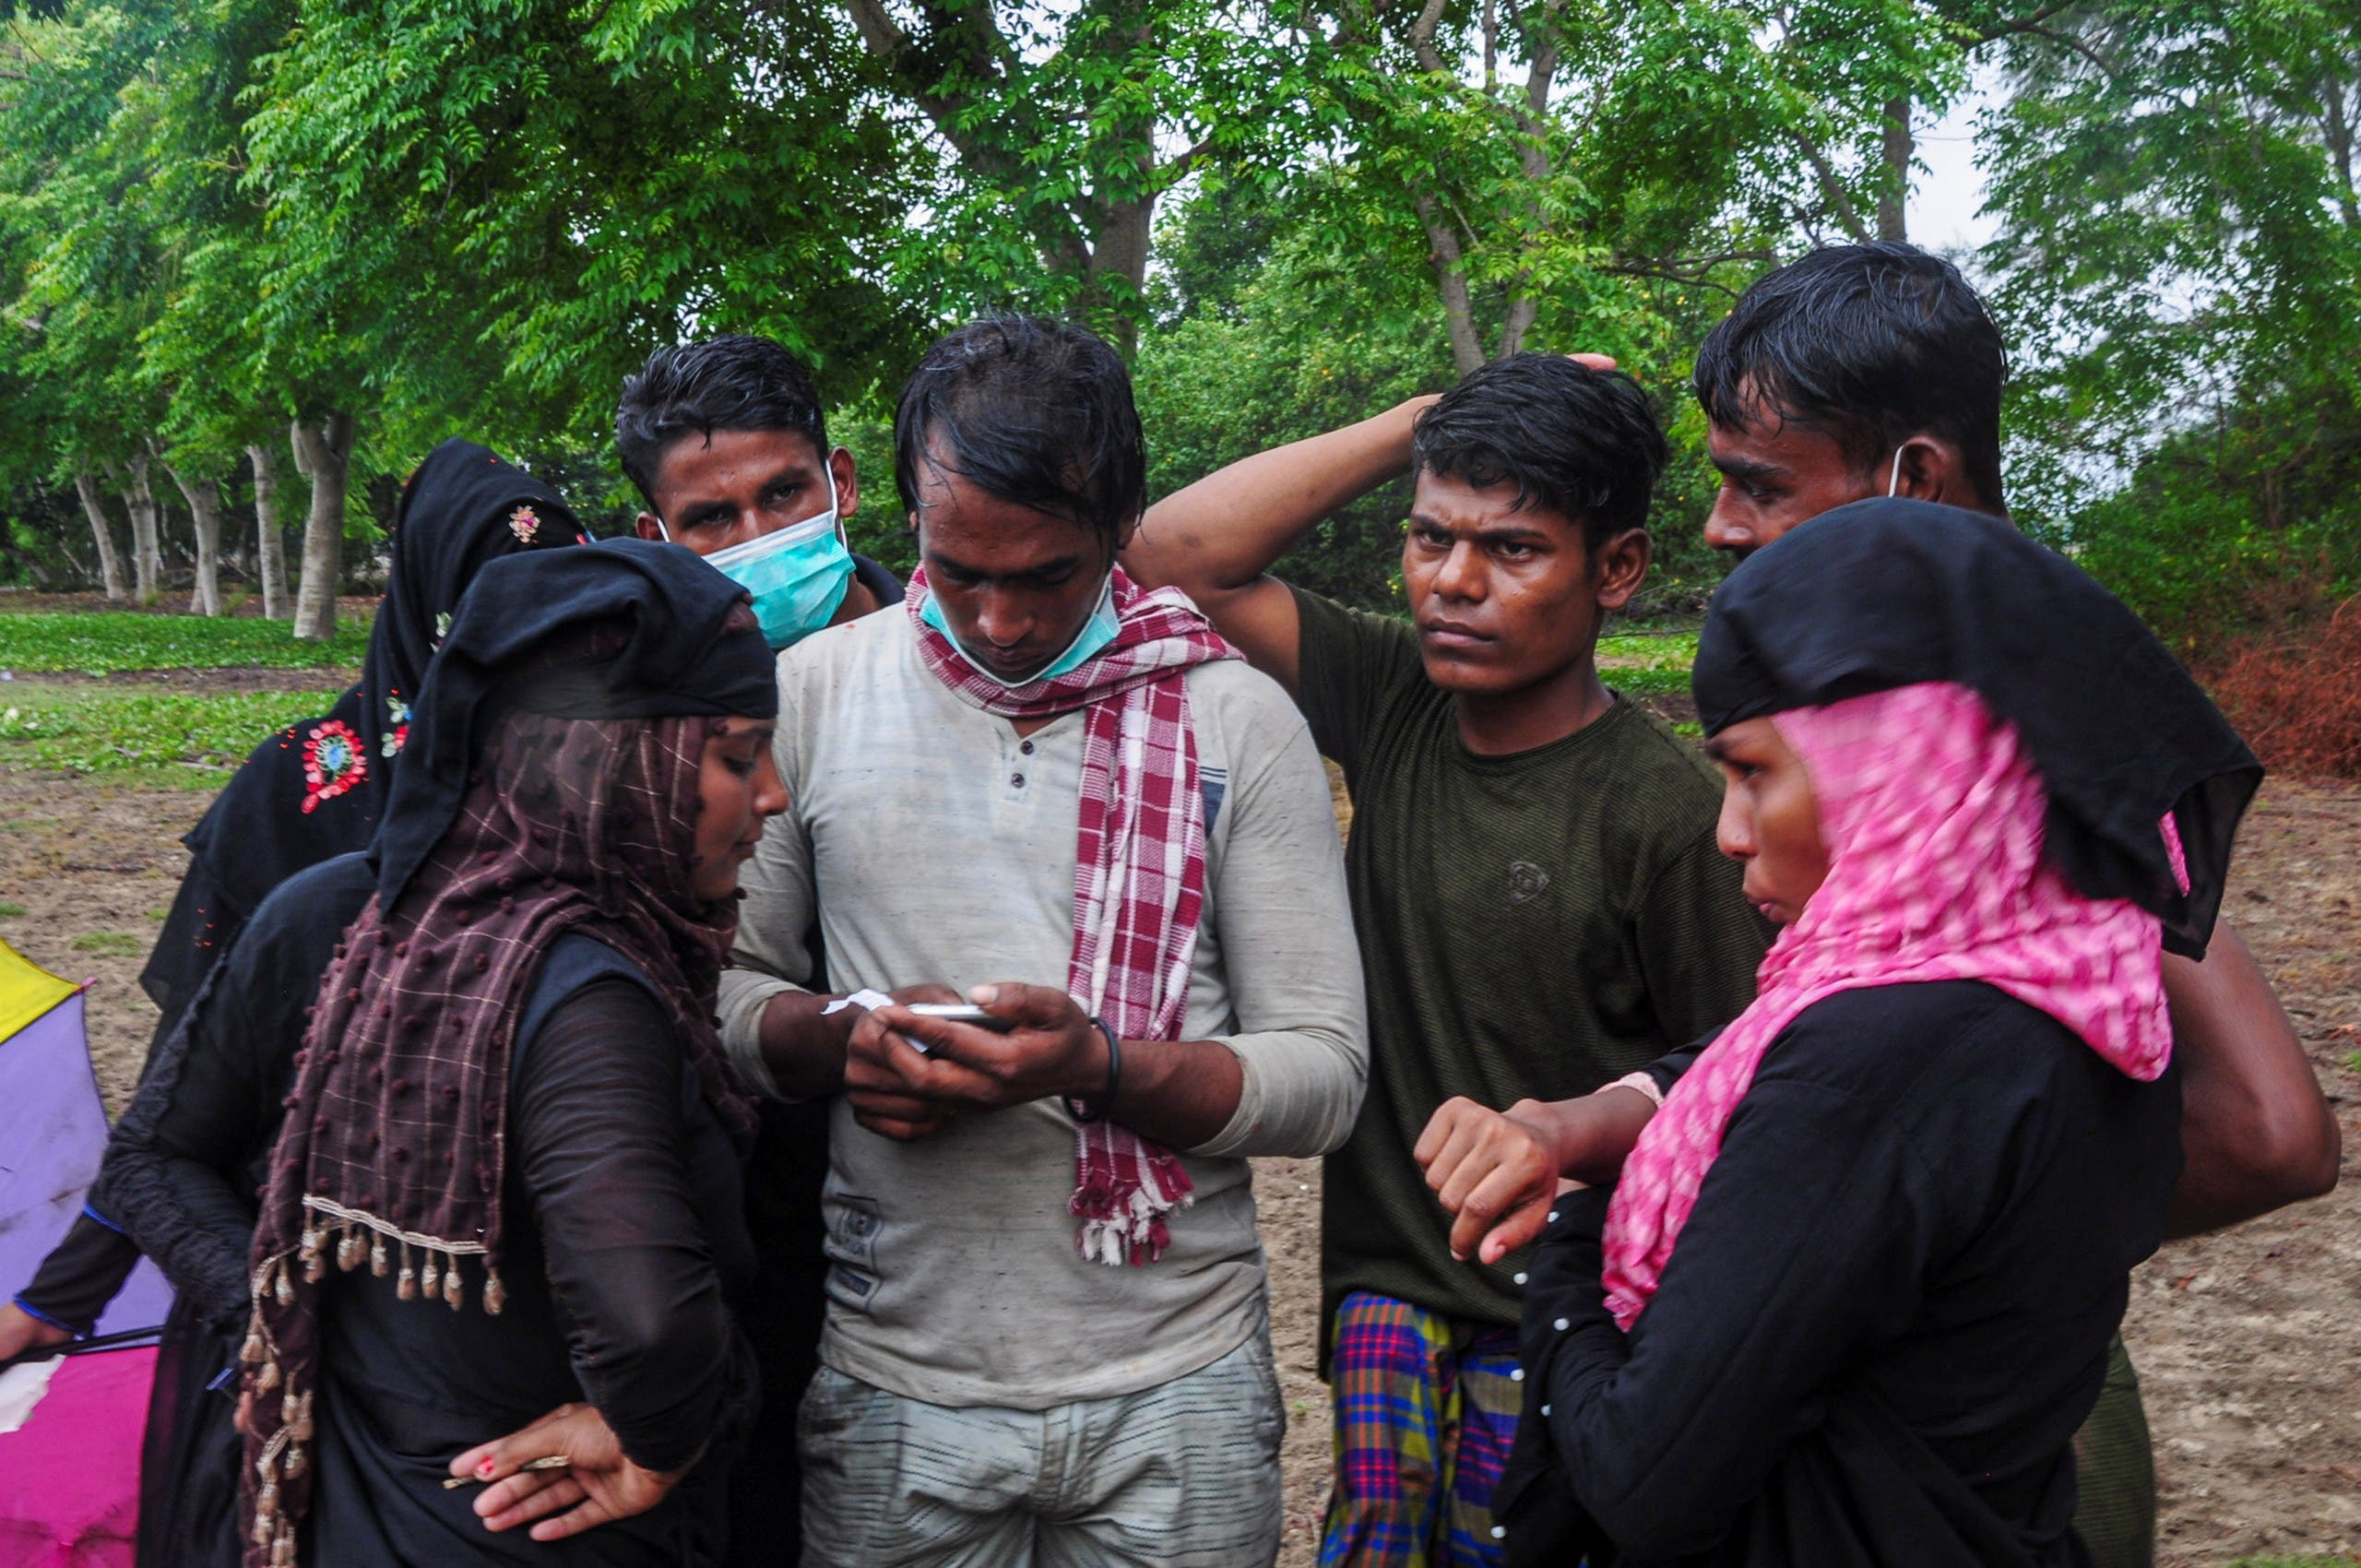 Some of the Rohingya refugees, die with the above boat in Arrived in Indonesia